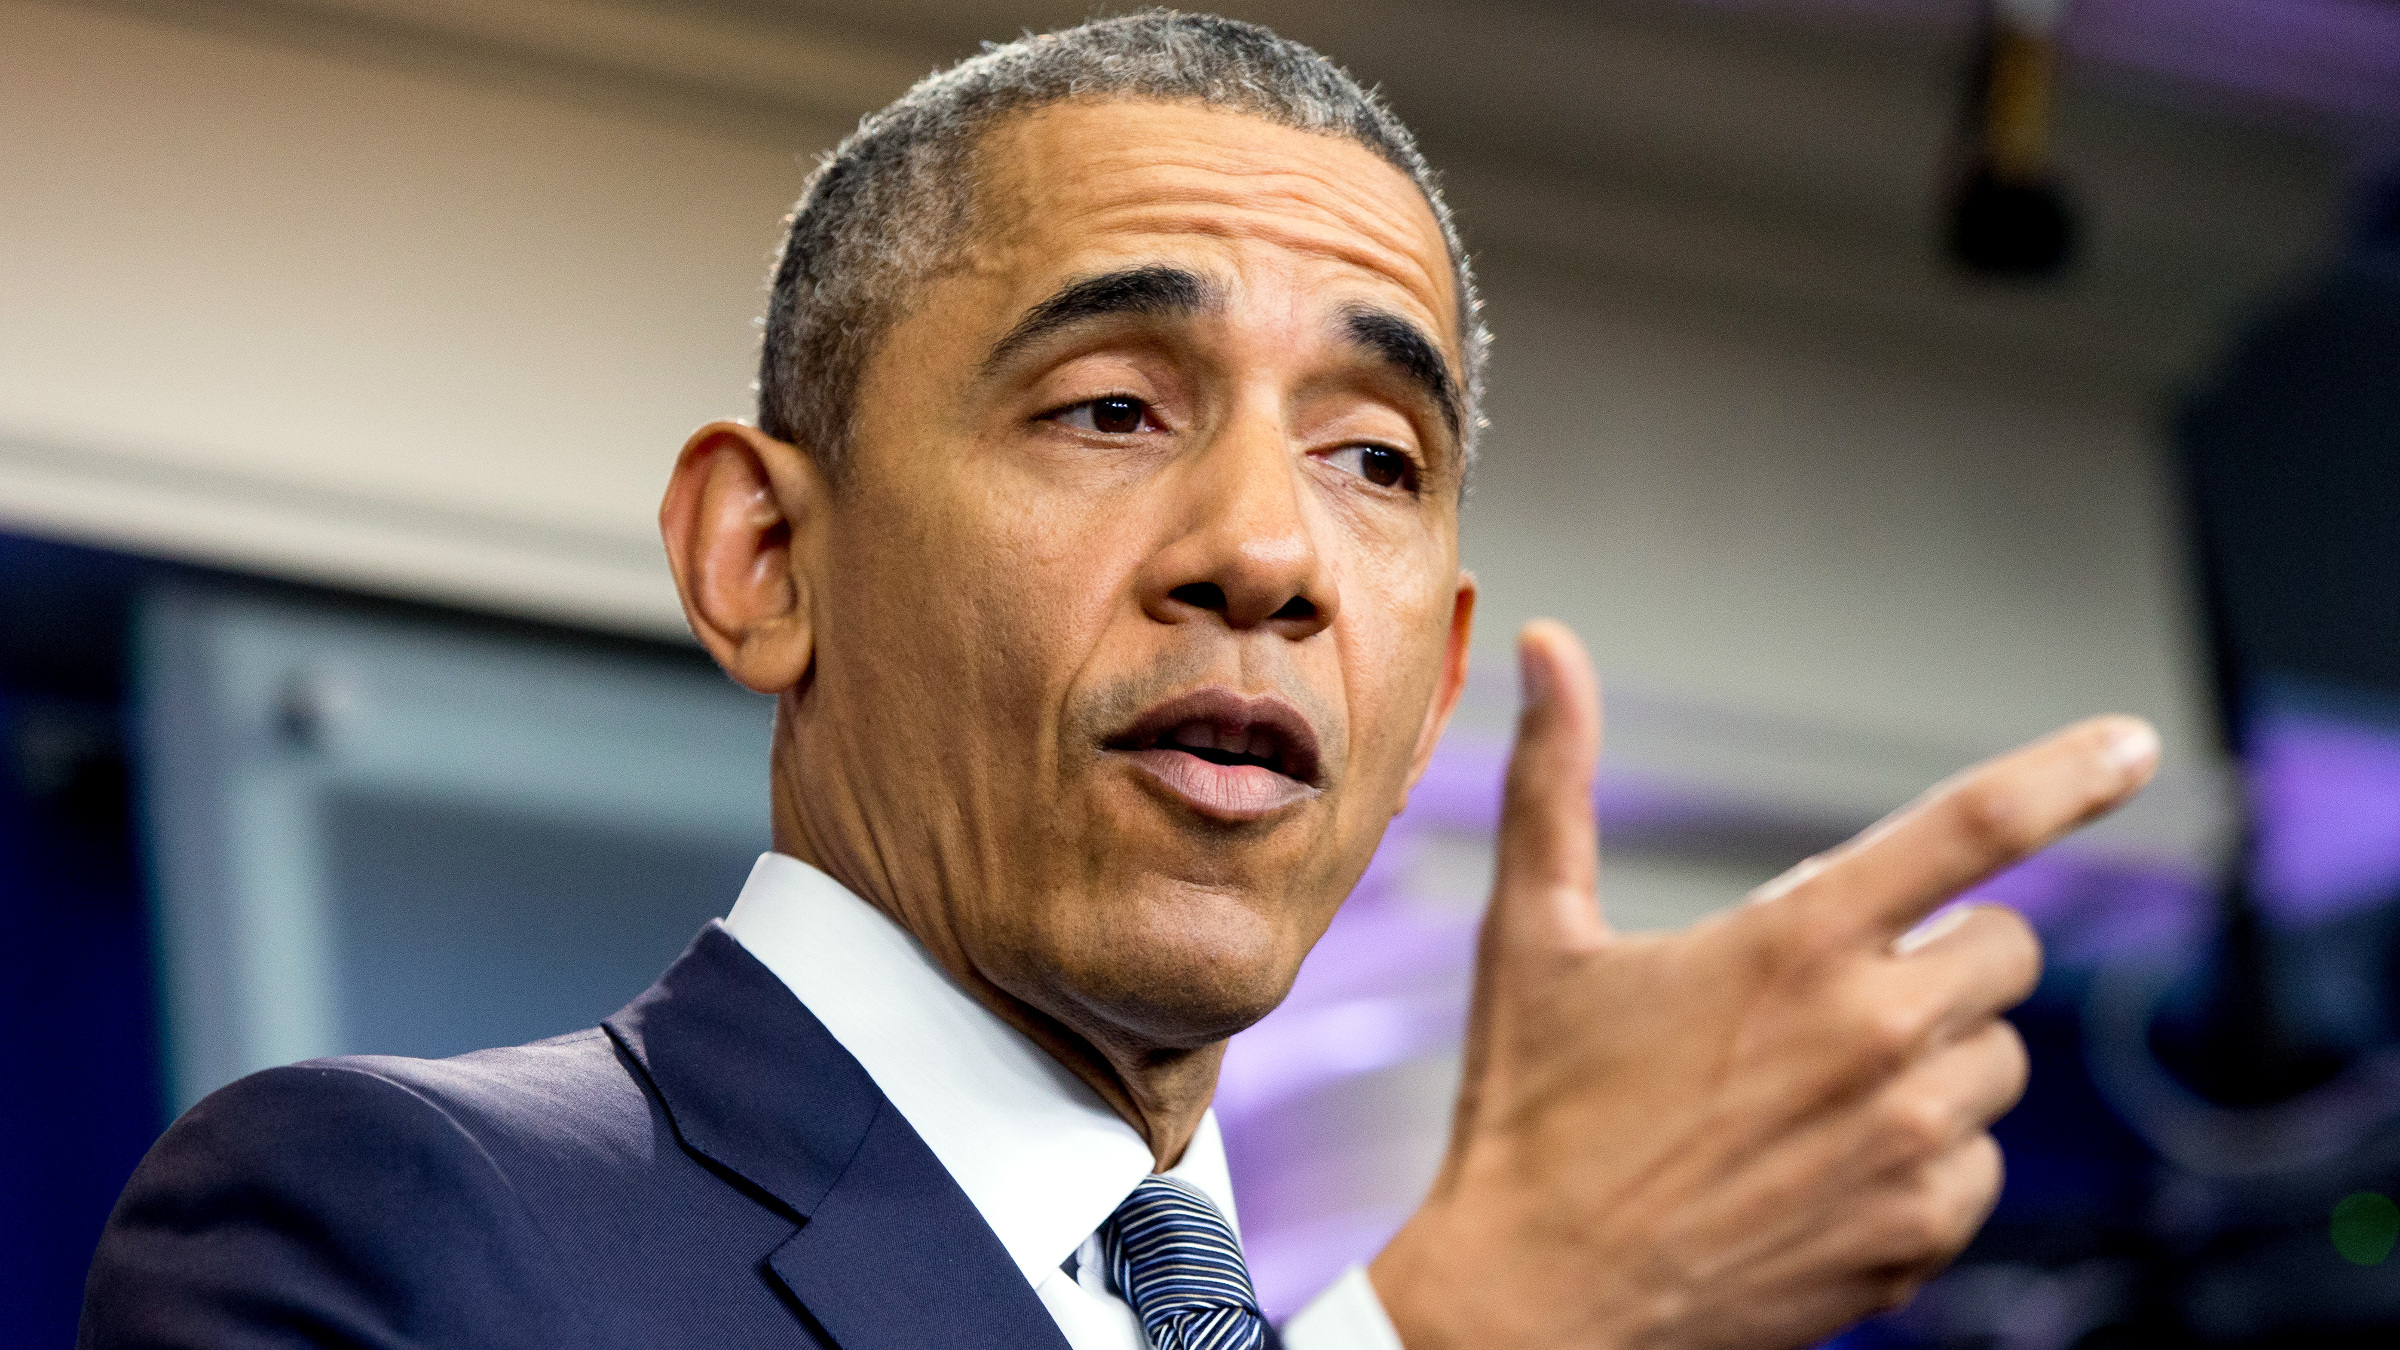 President Barack Obama speaks in the White House briefing room in Washington, Friday, May 6, 2016, about the economy and new steps to strengthen financial transparency and combat money laundering, corruption, and tax evasion.